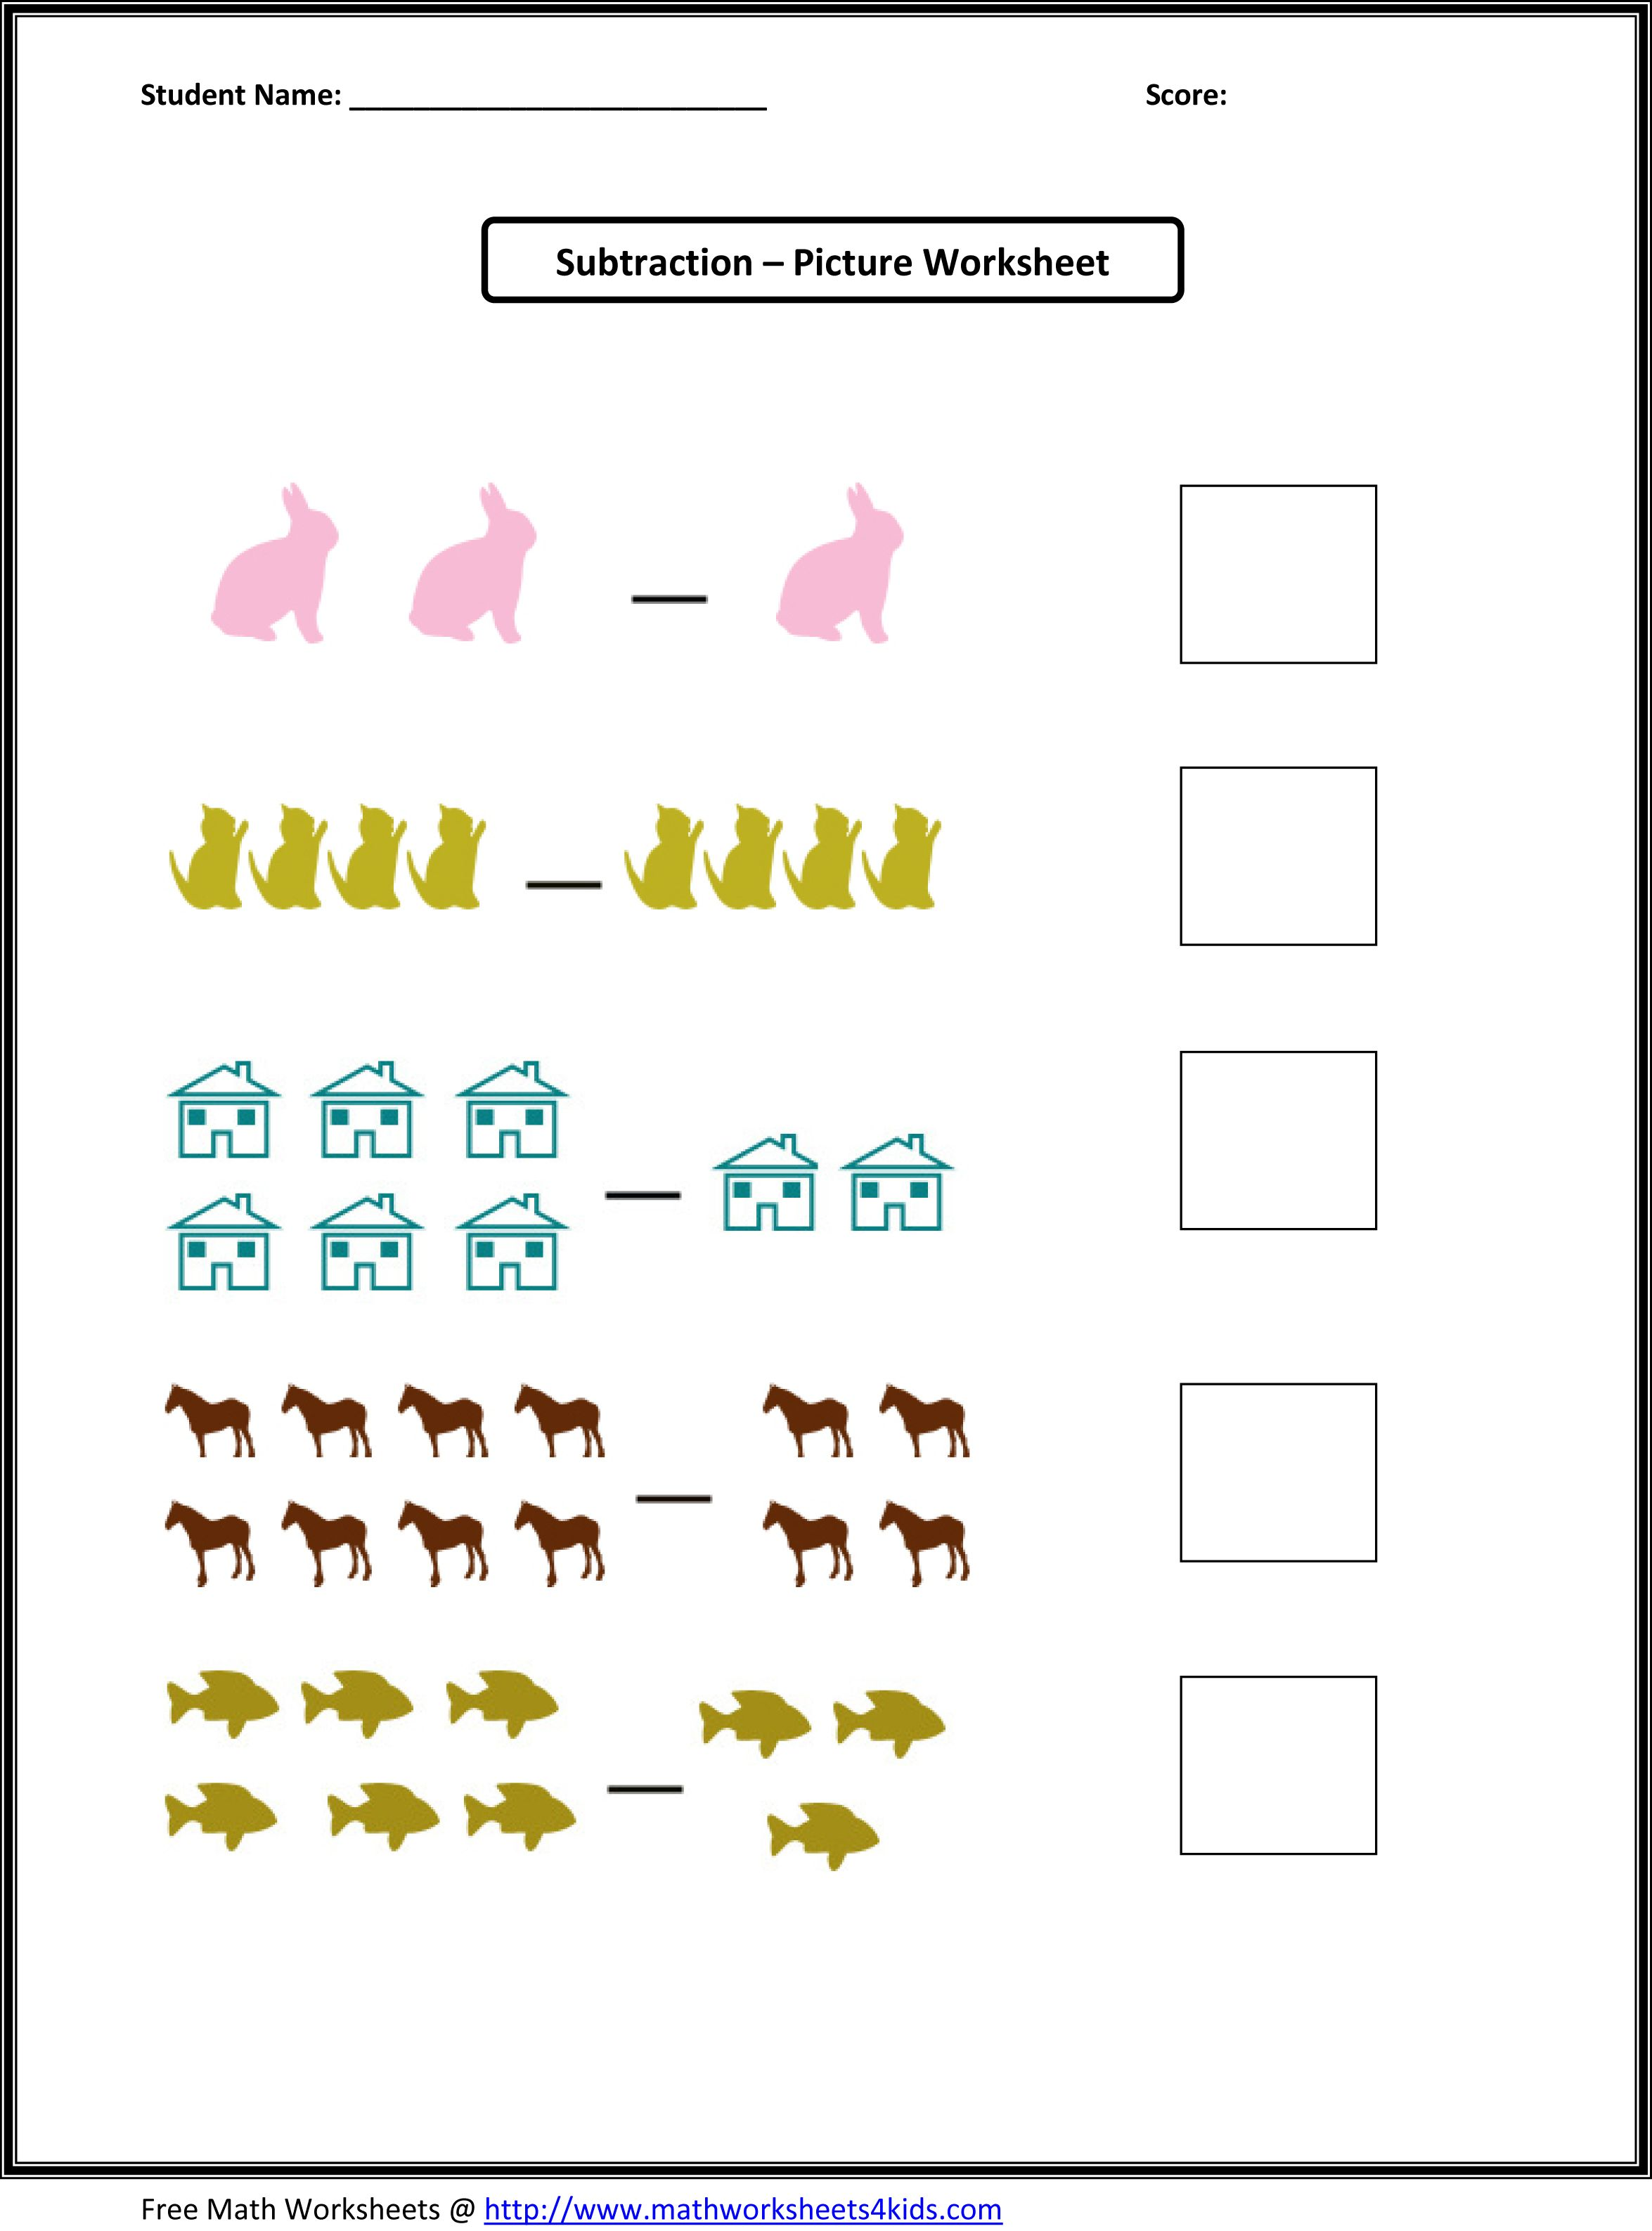 Simple Subtraction Worksheets For Kindergarten With